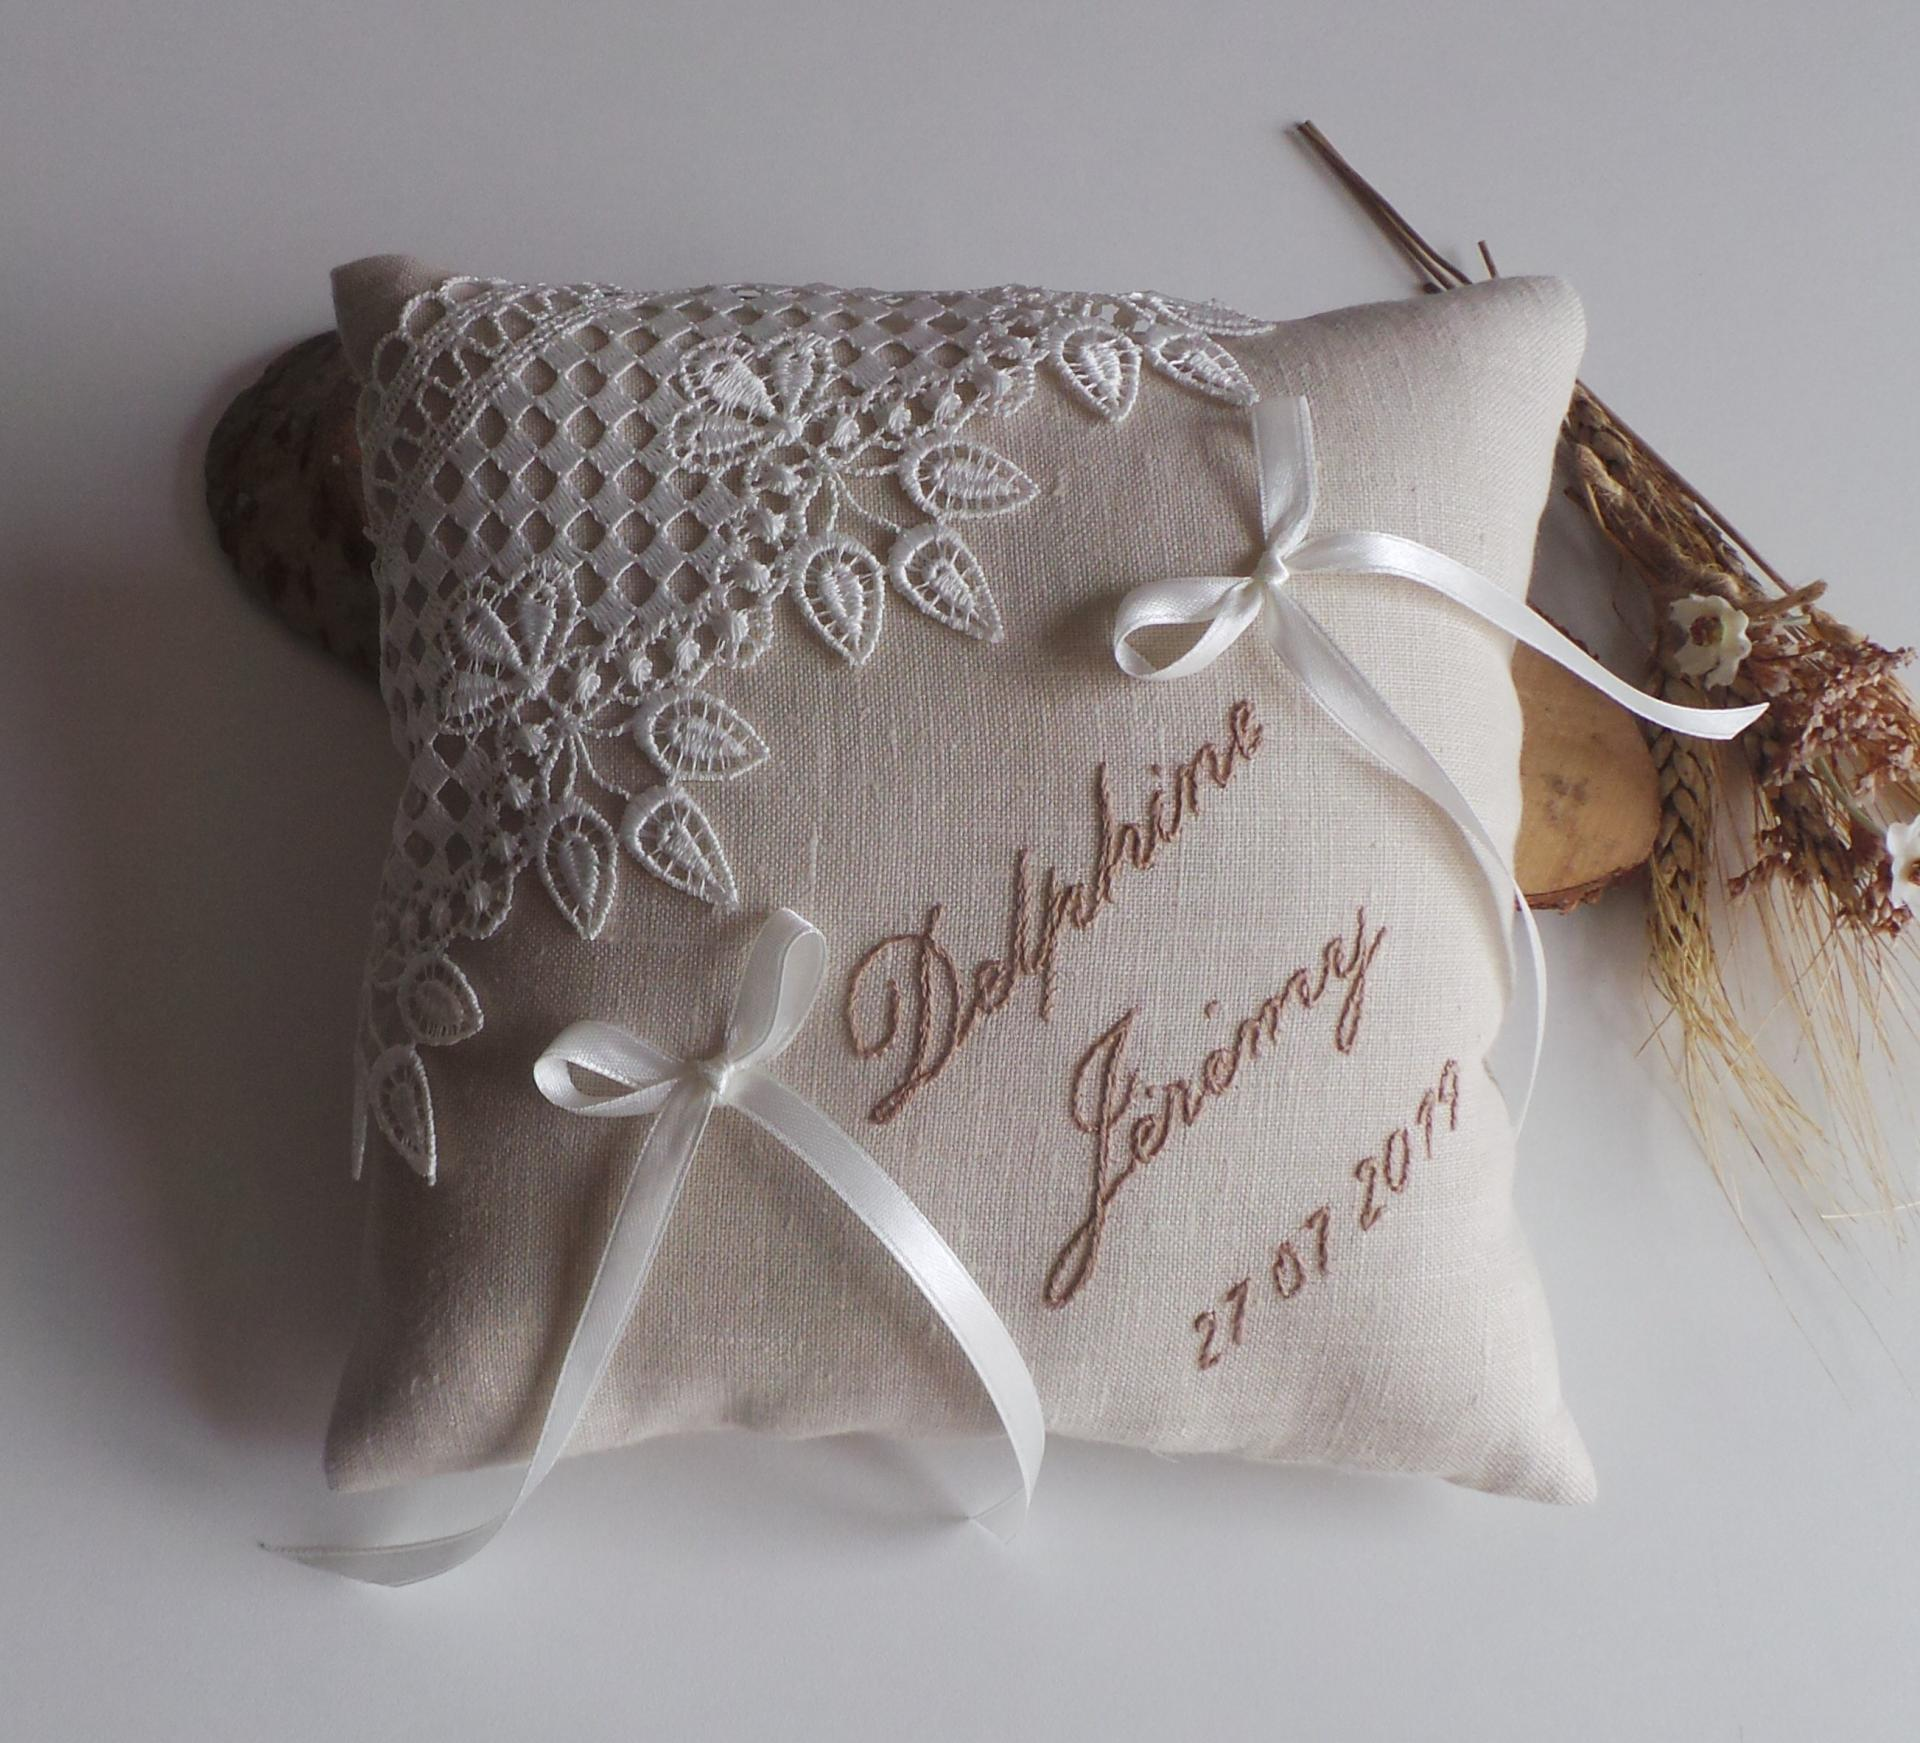 Decoration mariage champetre chic coussin alliance personnalise